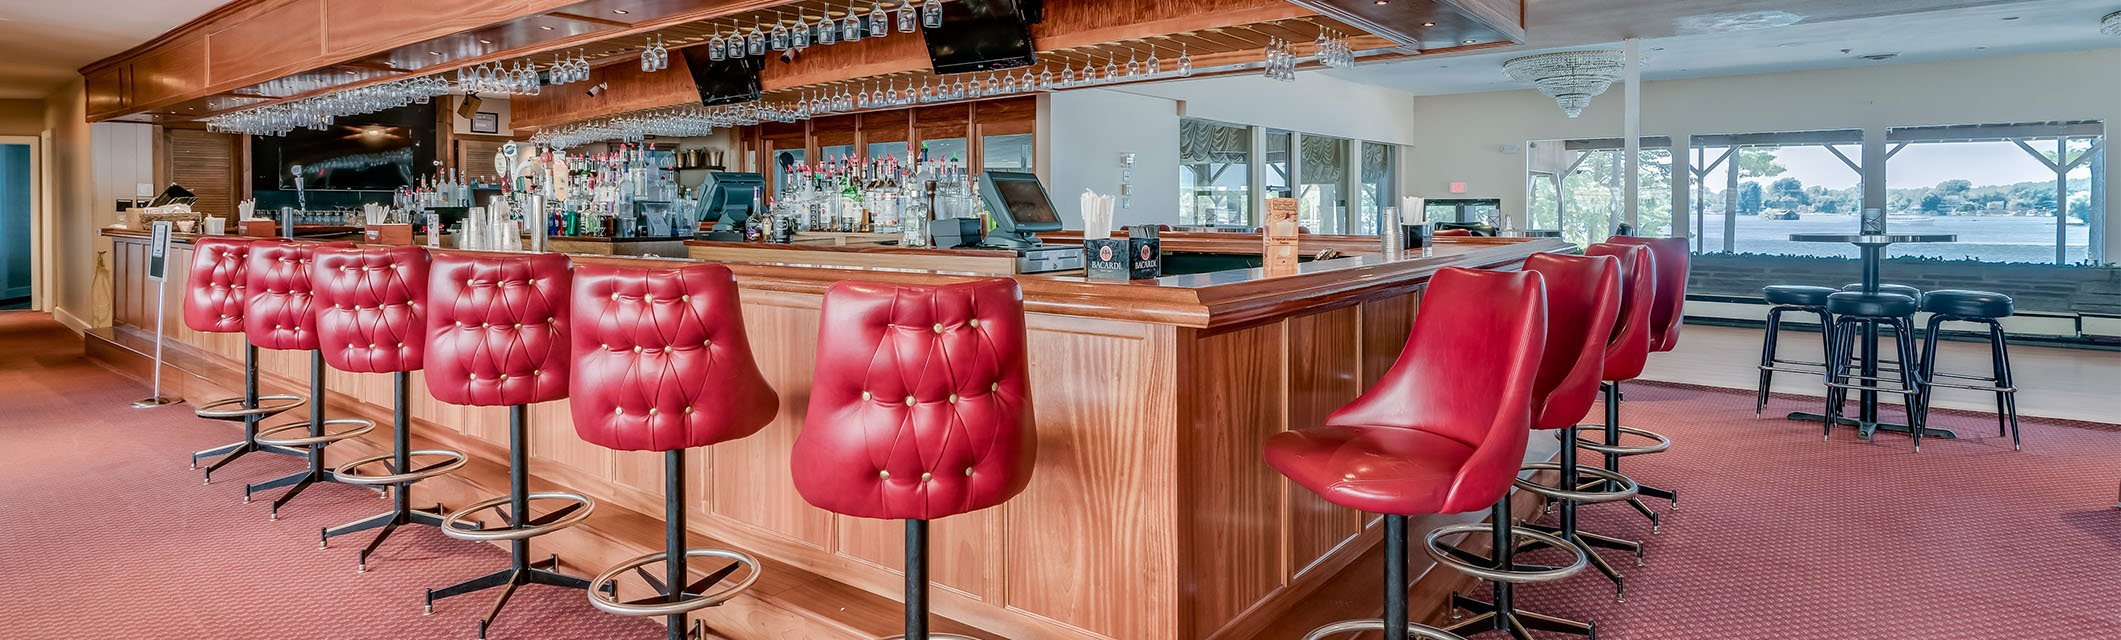 red bar stools around a bar